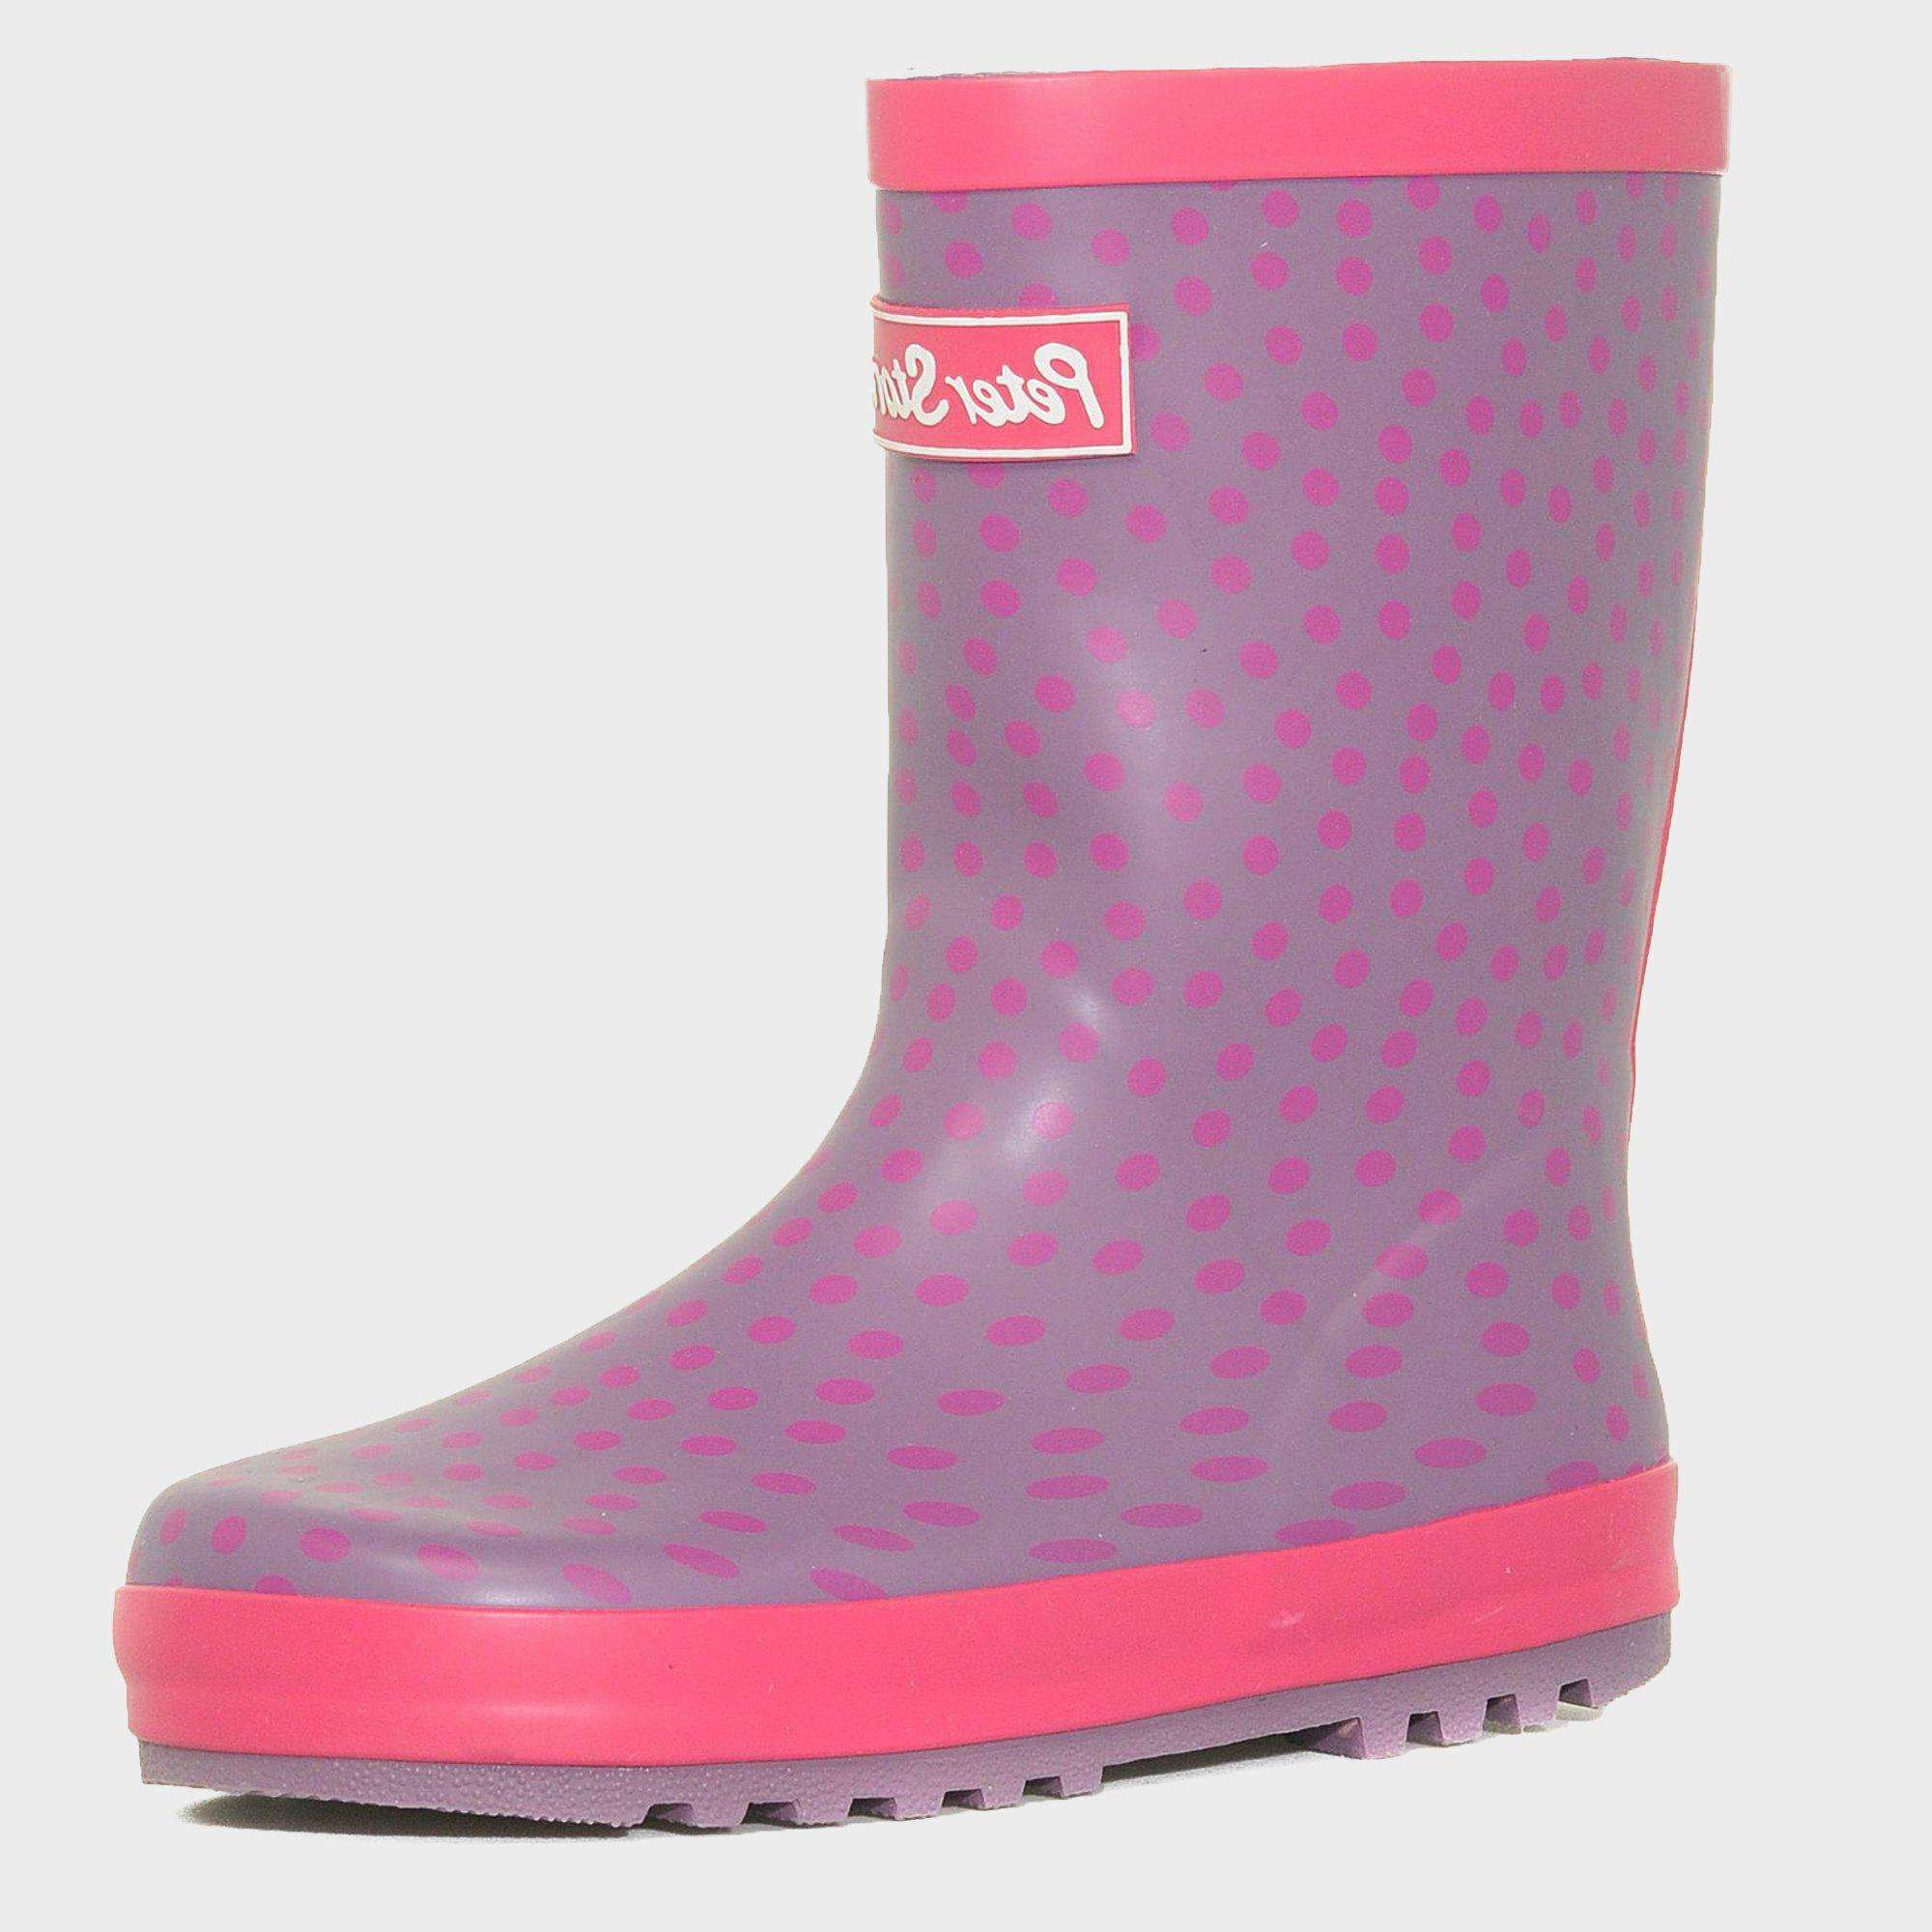 PETER STORM Girls' Spotted Trim Wellies